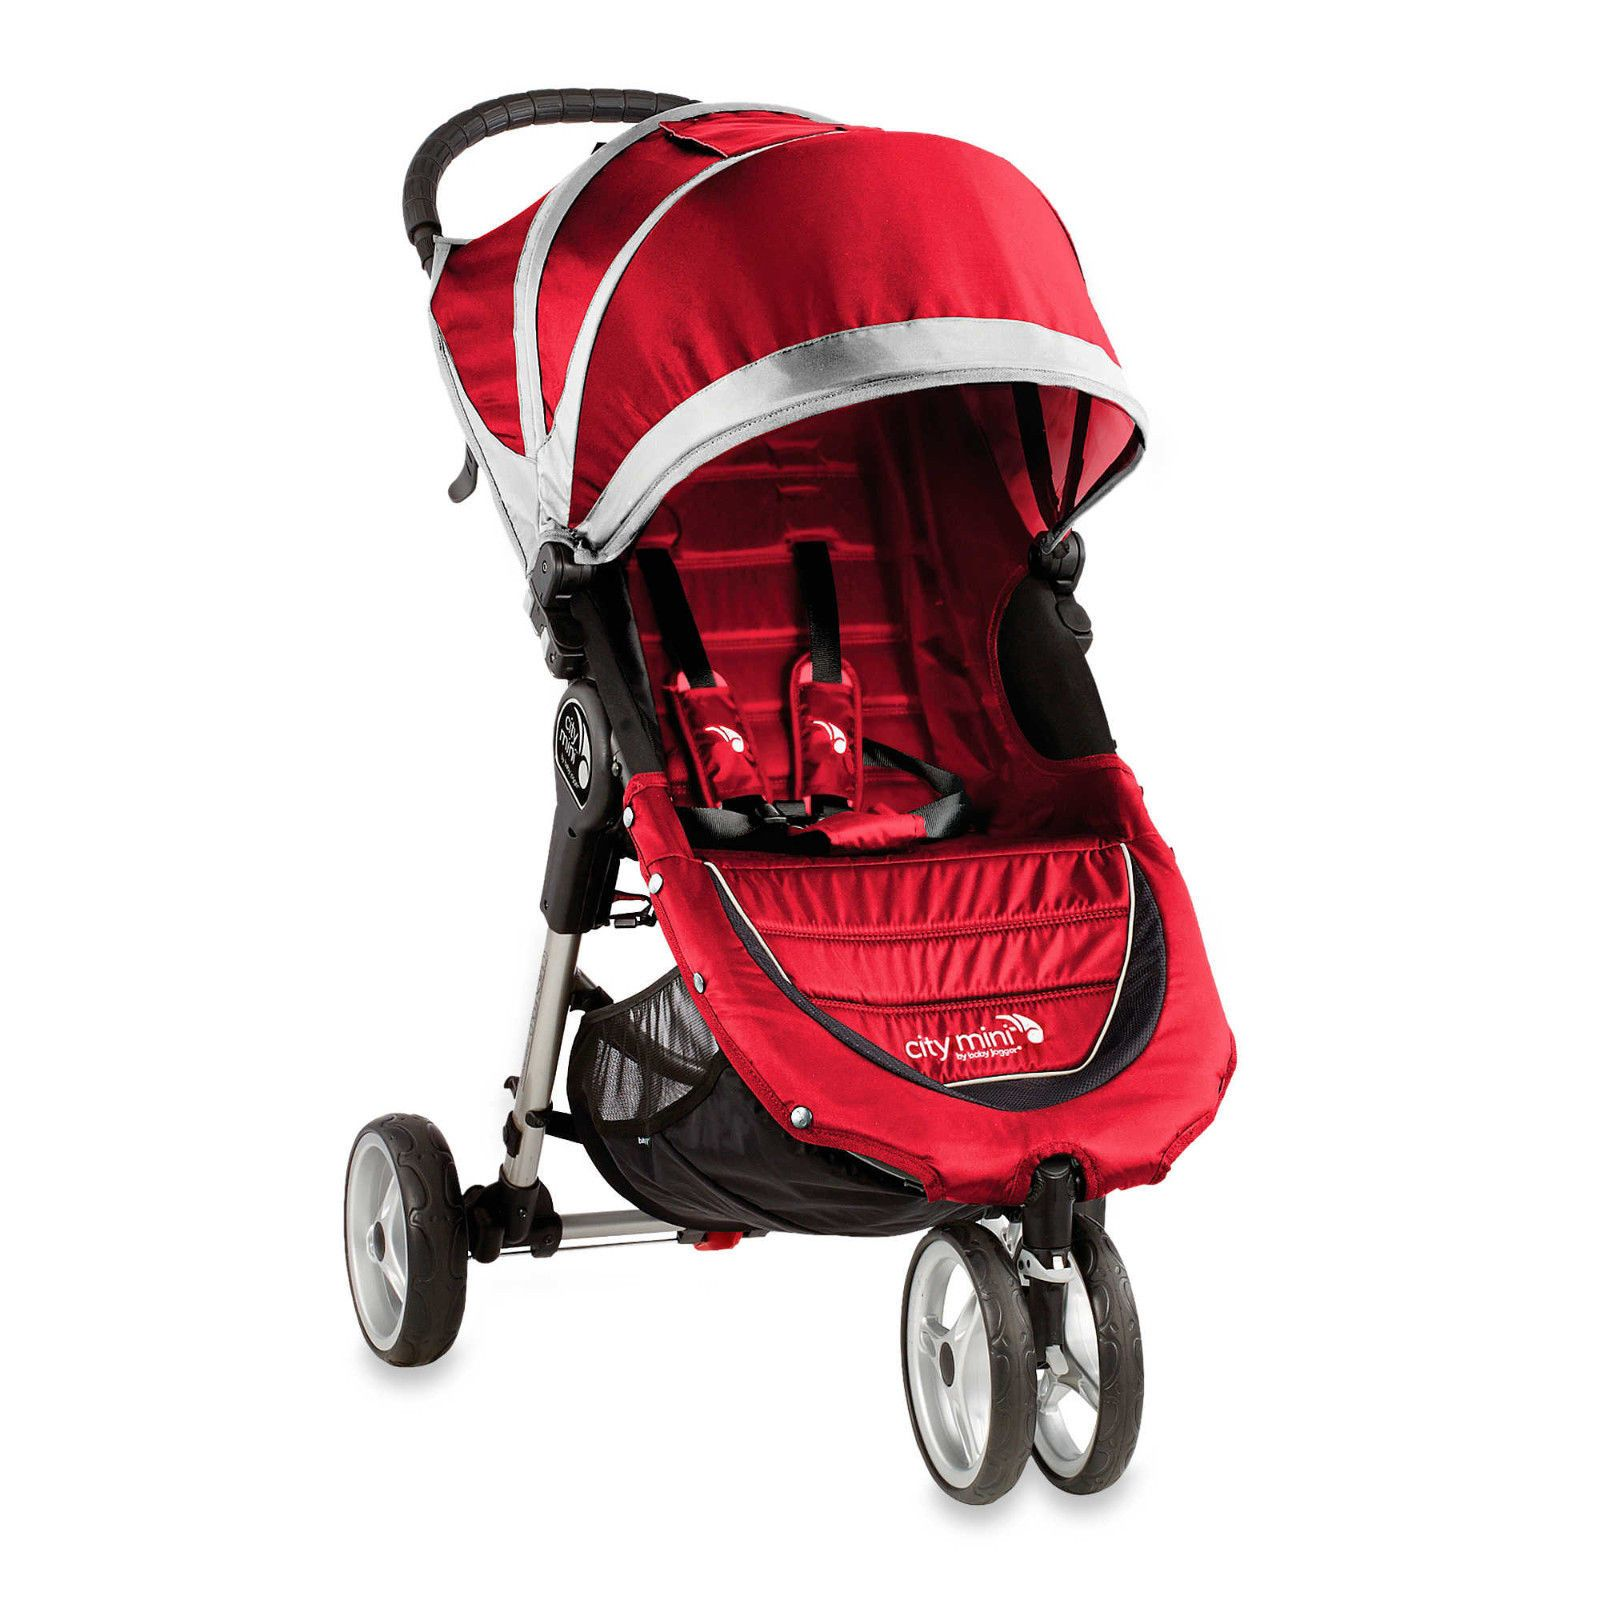 Details about Baby Jogger 2016 City Mini Single Stroller